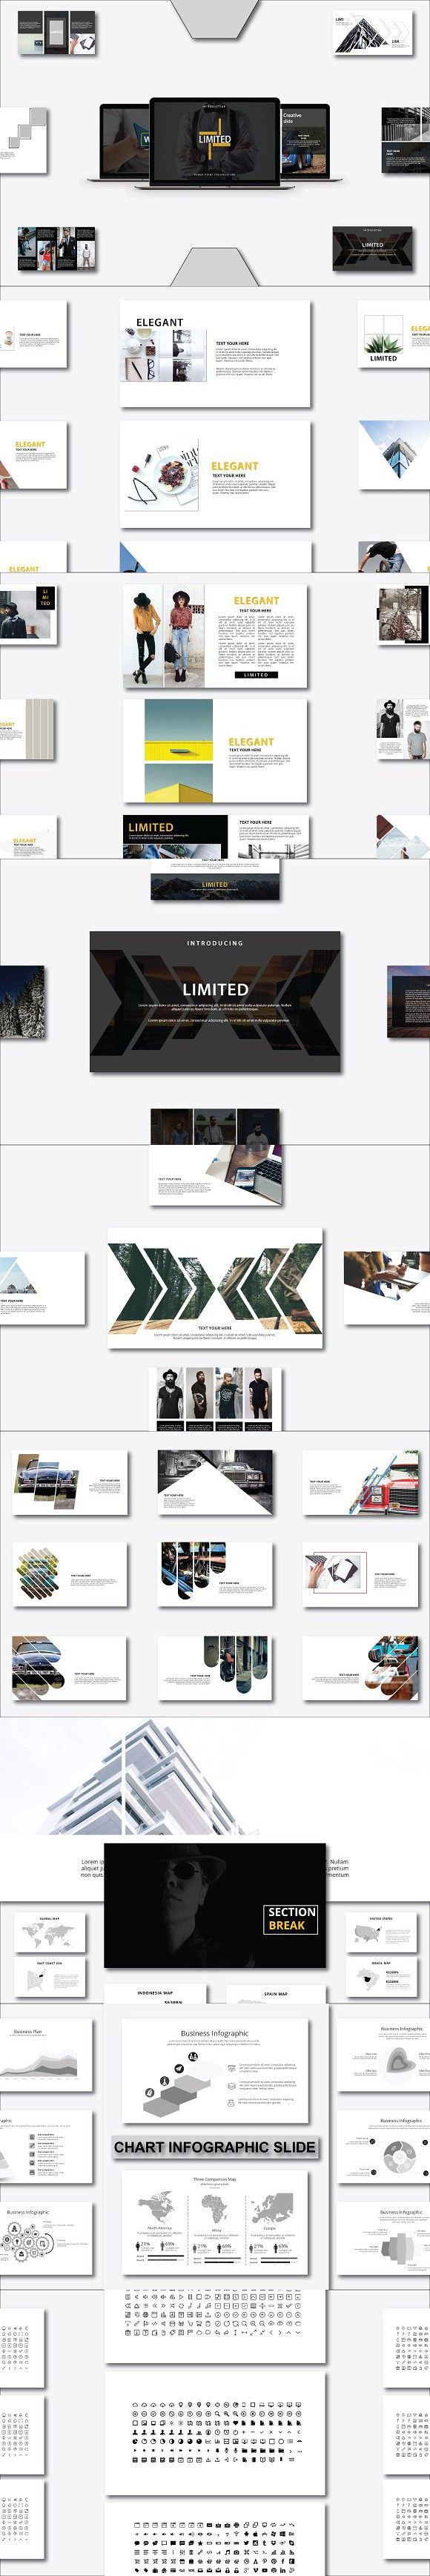 Limited Presentation Templates. Presentation Templates